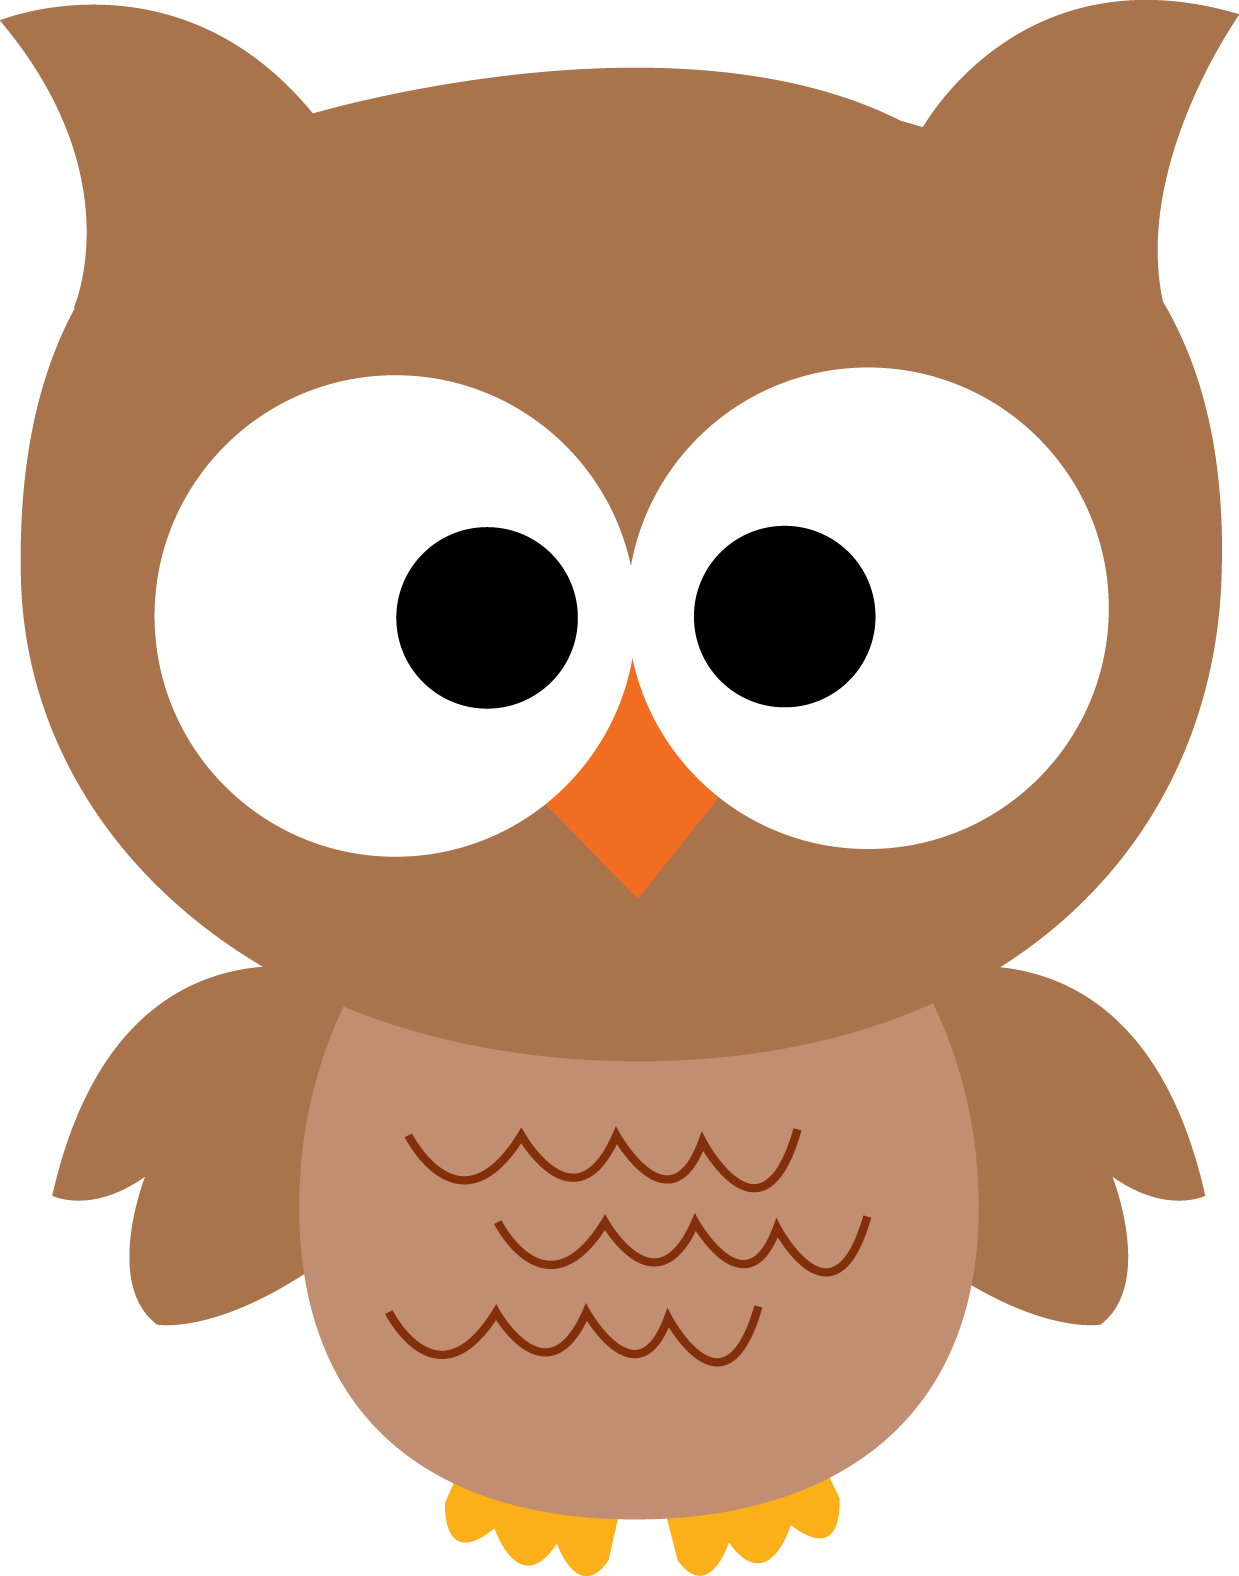 The Teacher's Chatterbox: Whooo's That?